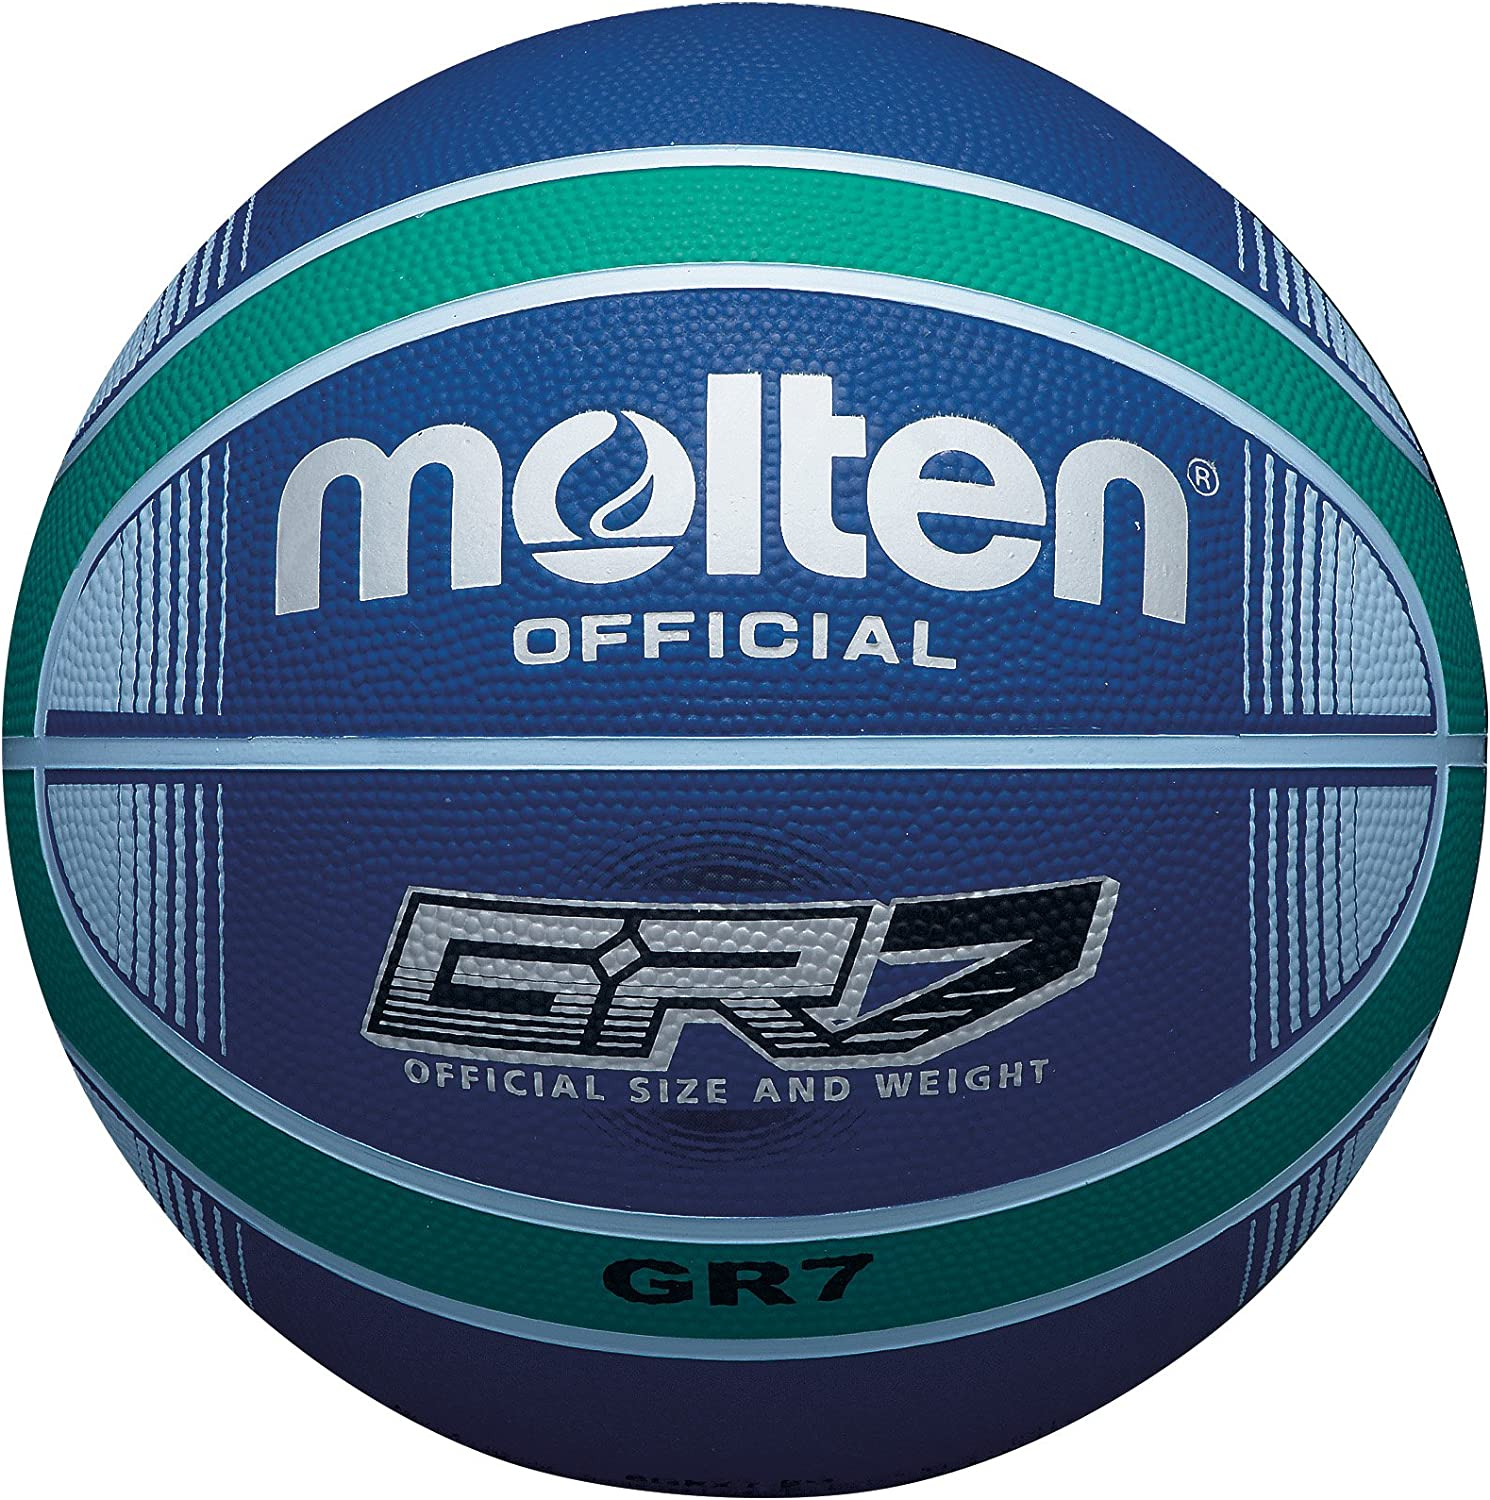 Molten GR7X Indoor Outdoor Rubber Basketball Ball - Limited time trial price Green Blue Max 66% OFF S